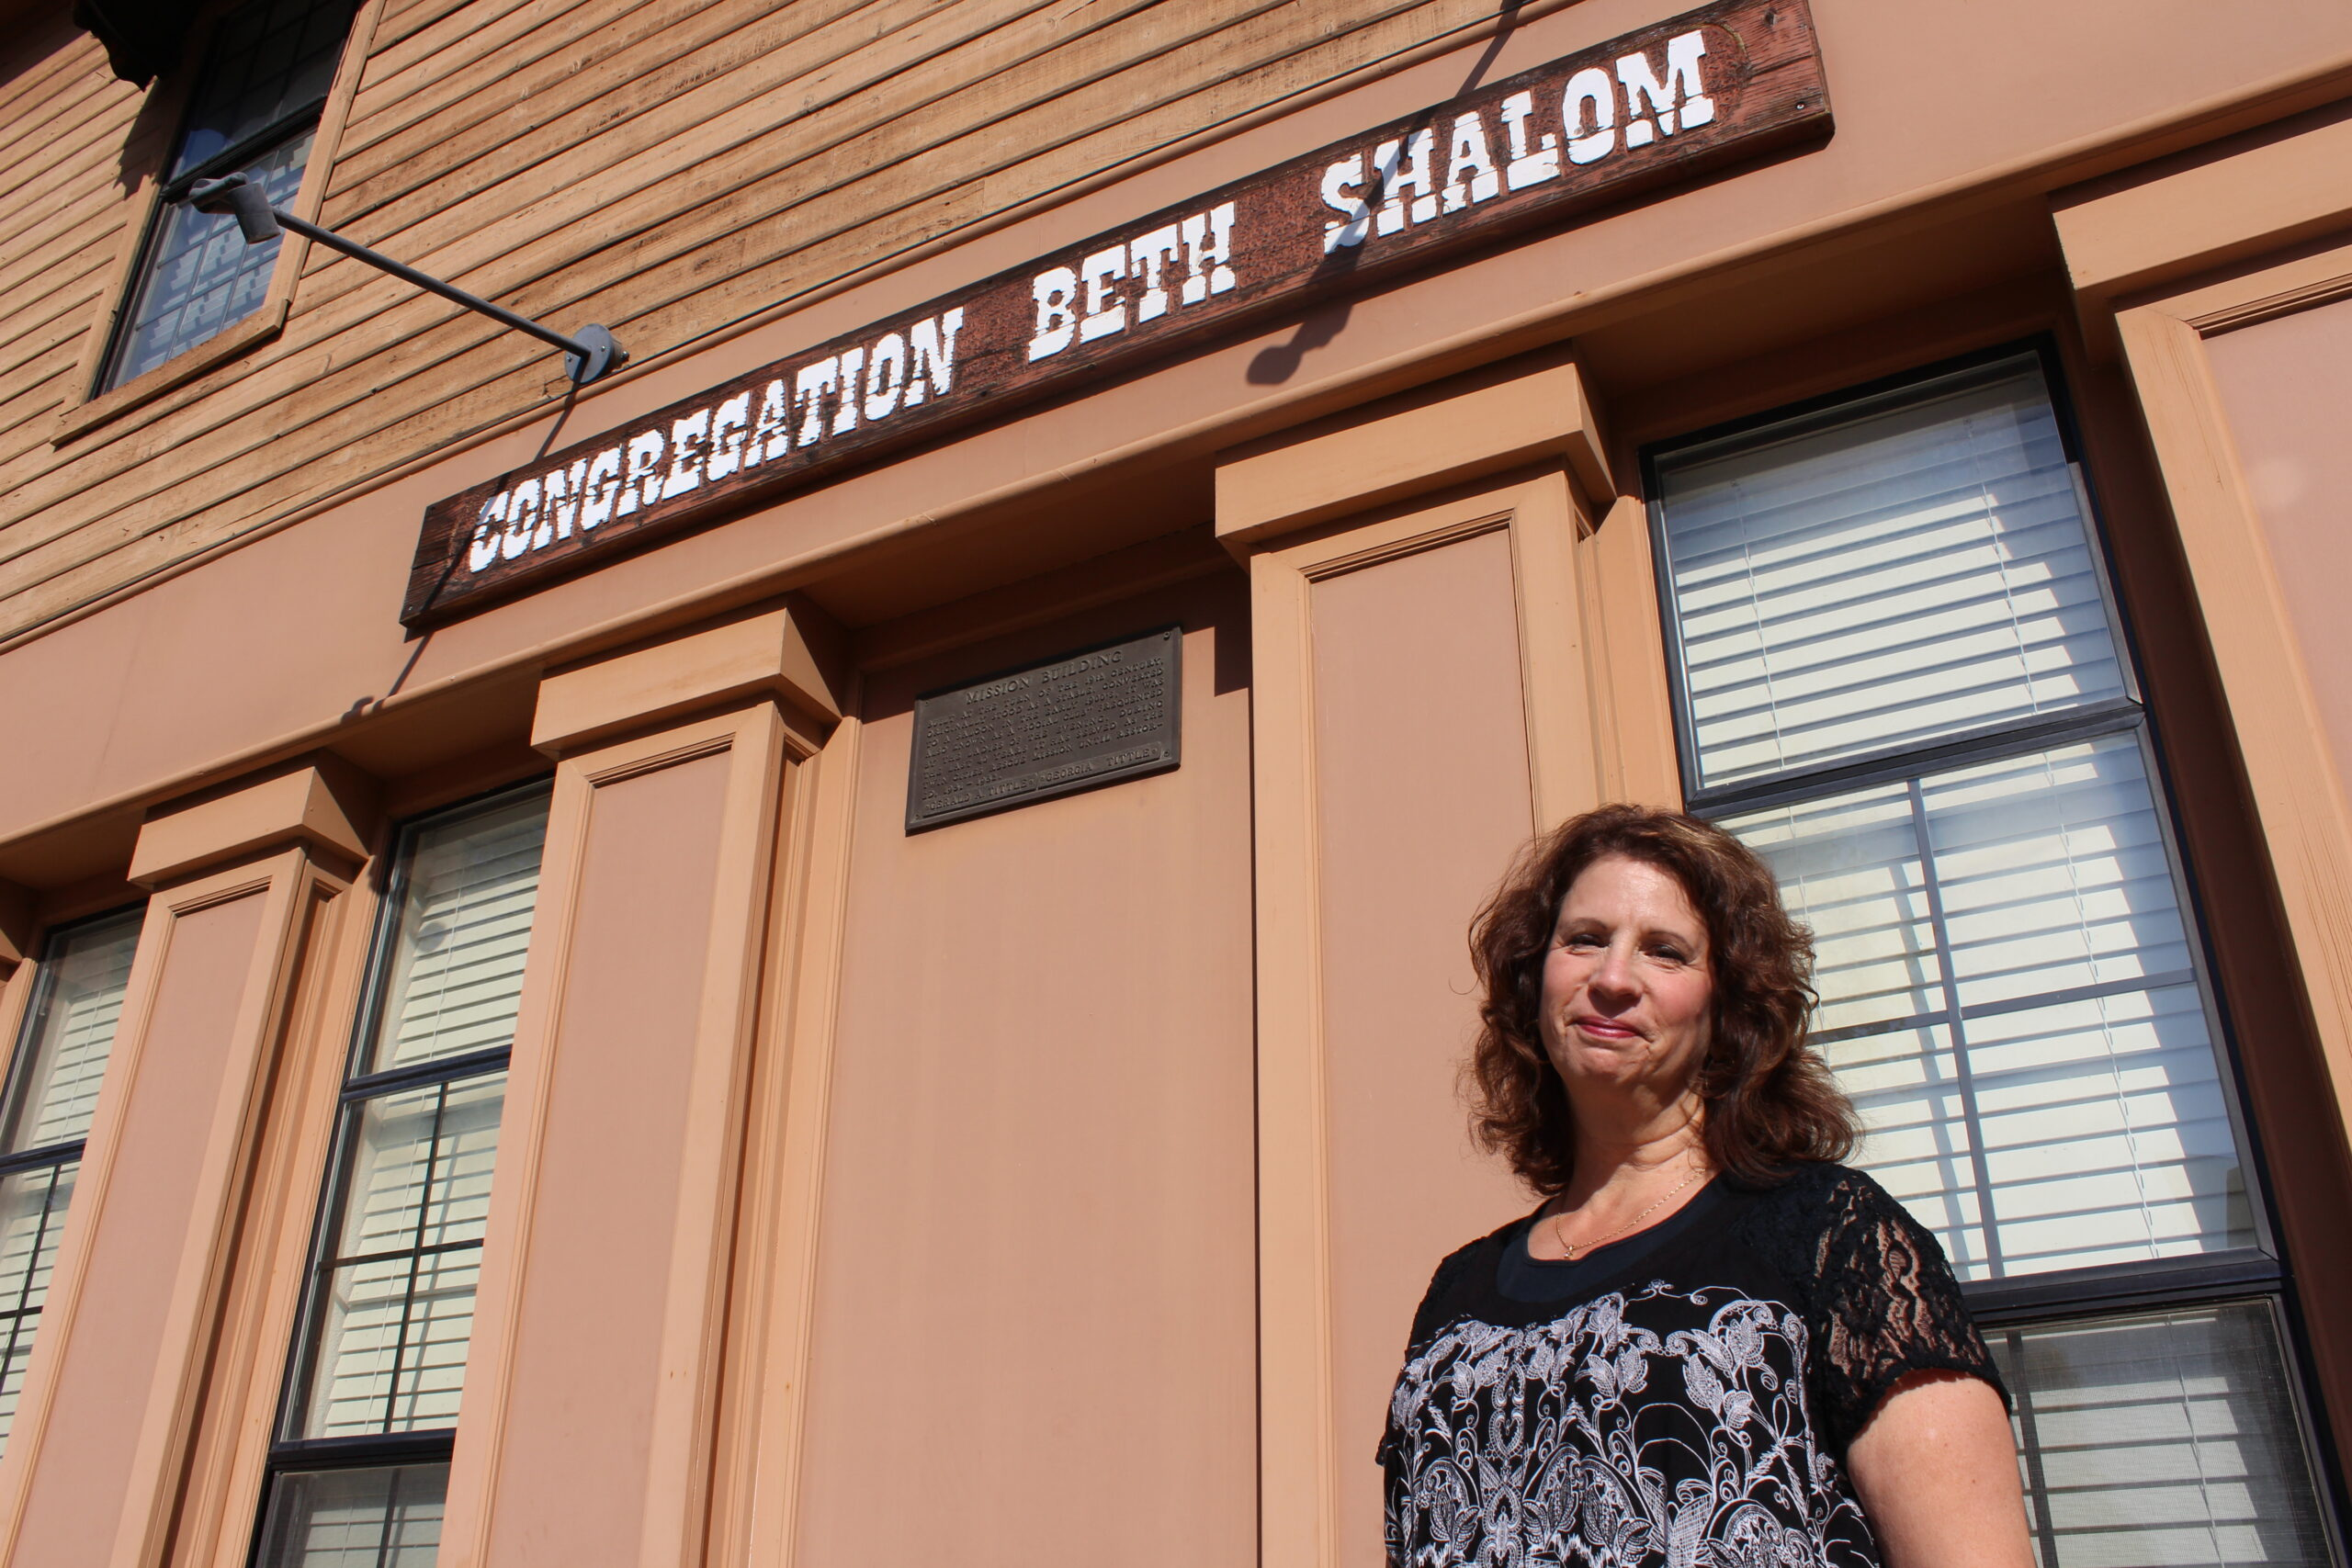 Miriam Root is a past president of Congregation Beth Shalom in Marysville, and has been a member for more than 30 years. (Photo/Gabriel Greschler)